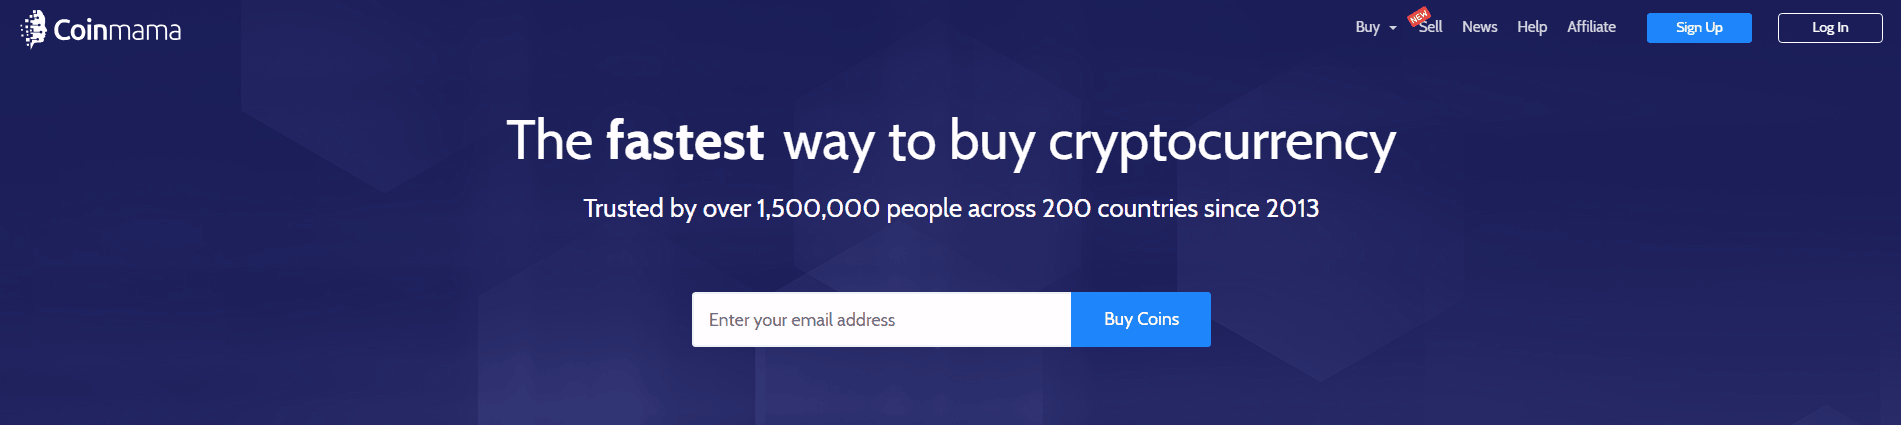 Coinmama Home Page